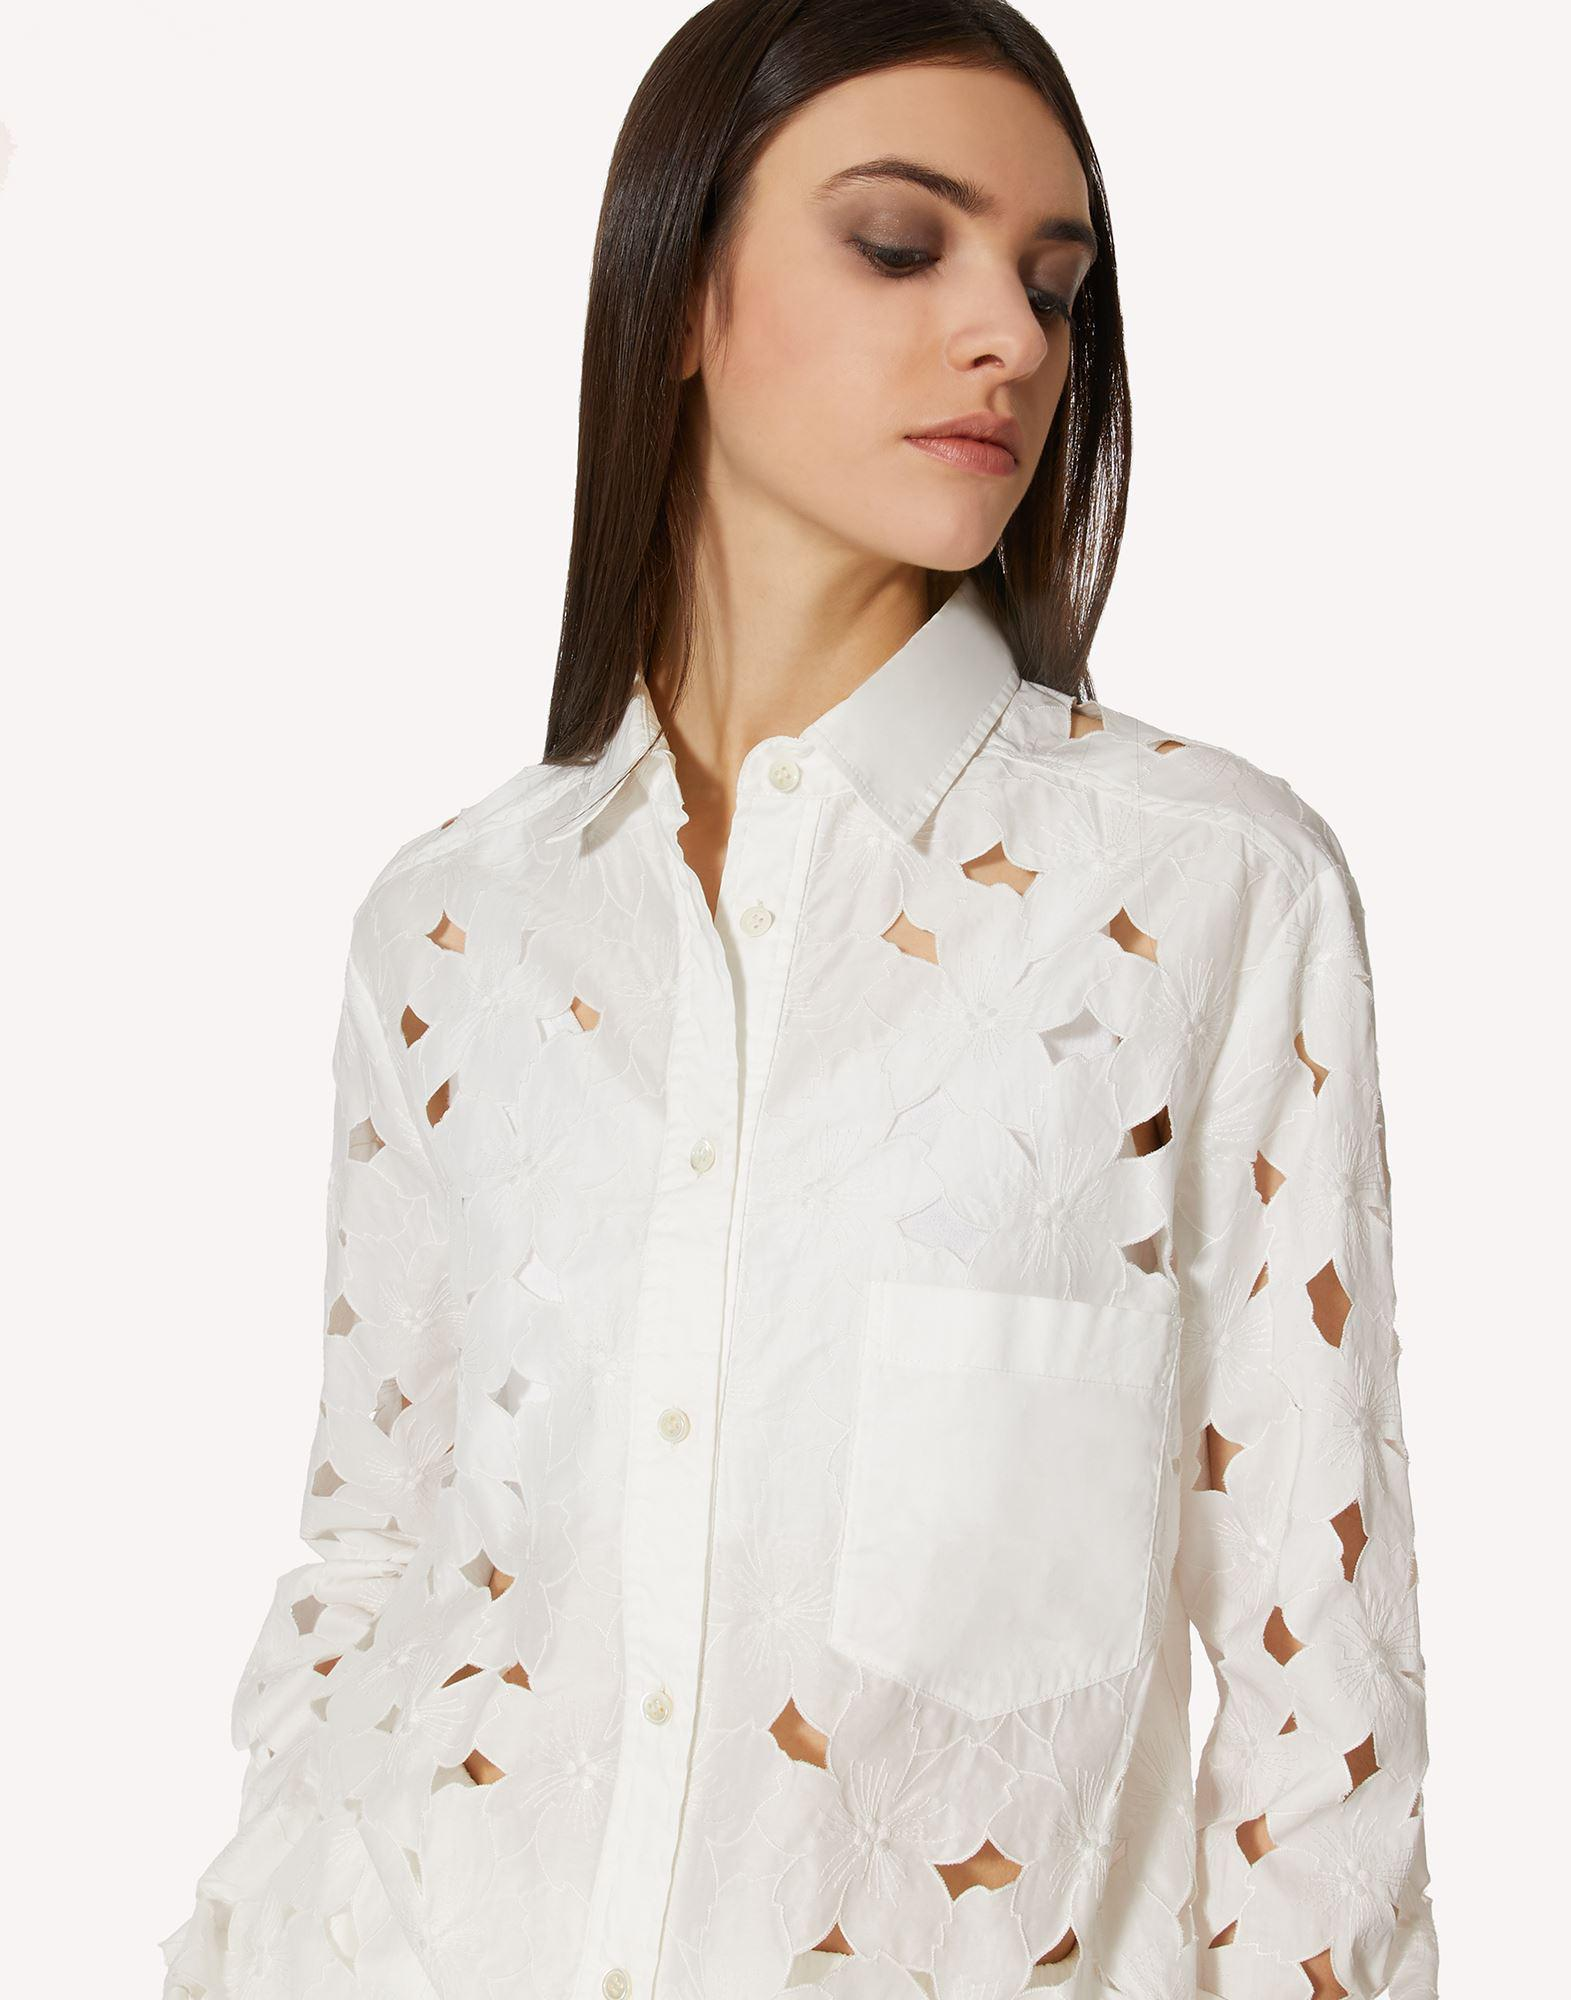 COTTON POPLIN SHIRT WITH CUT-OUT EMBROIDERY 3